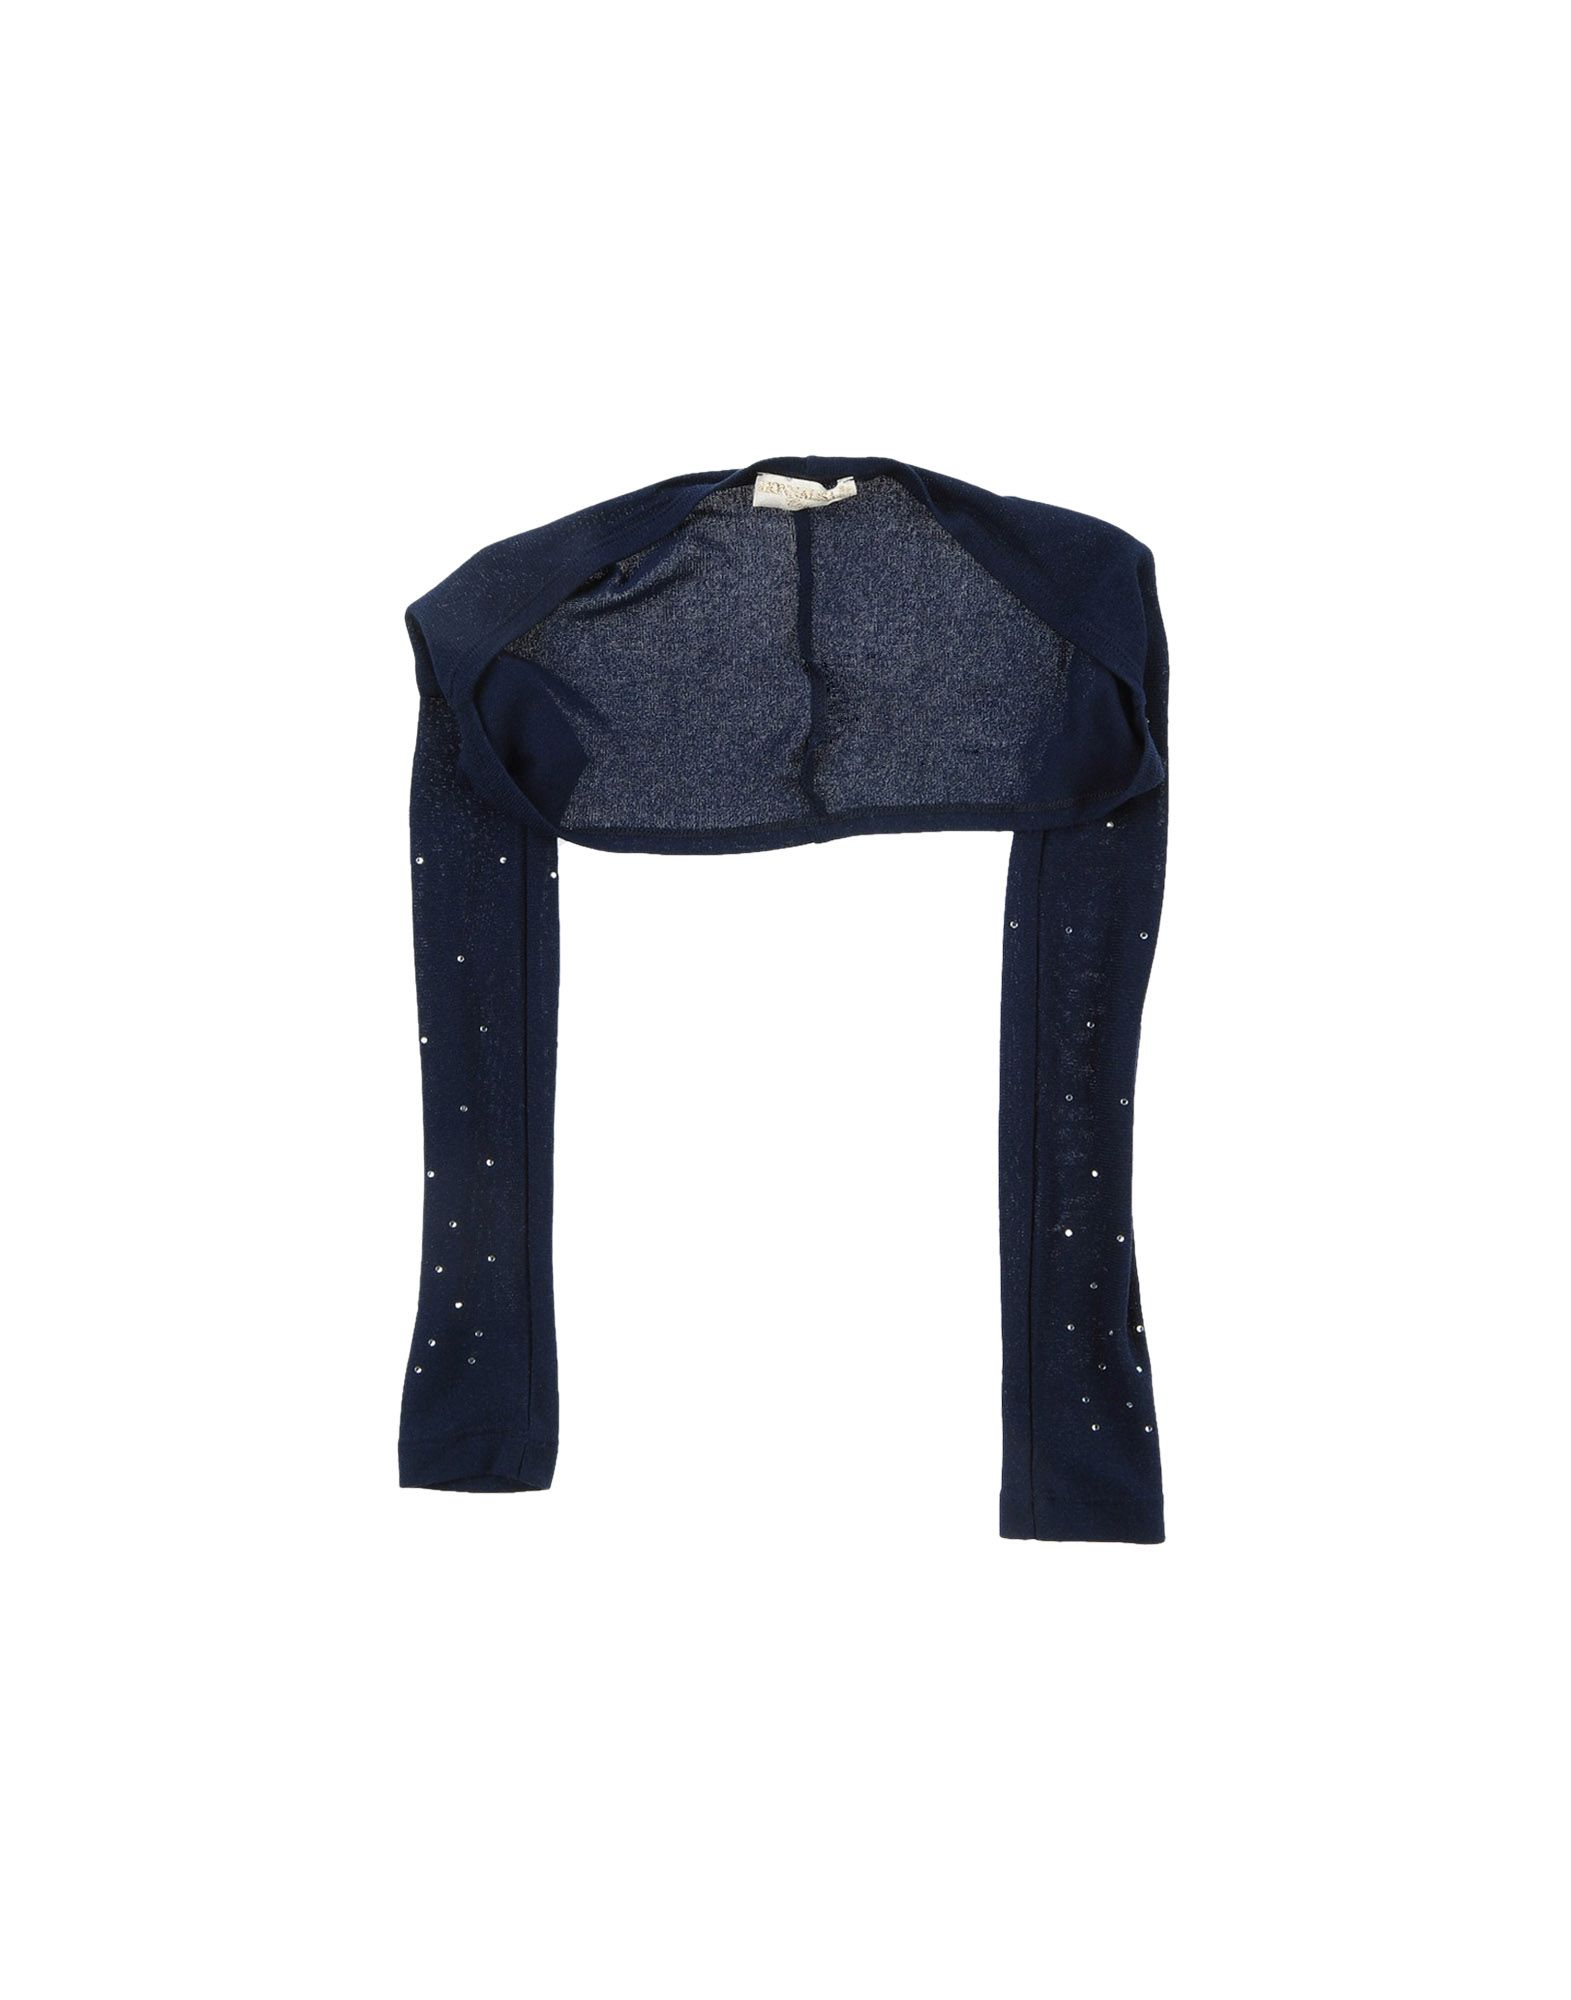 MONNALISA CHIC Shrug in Dark Blue